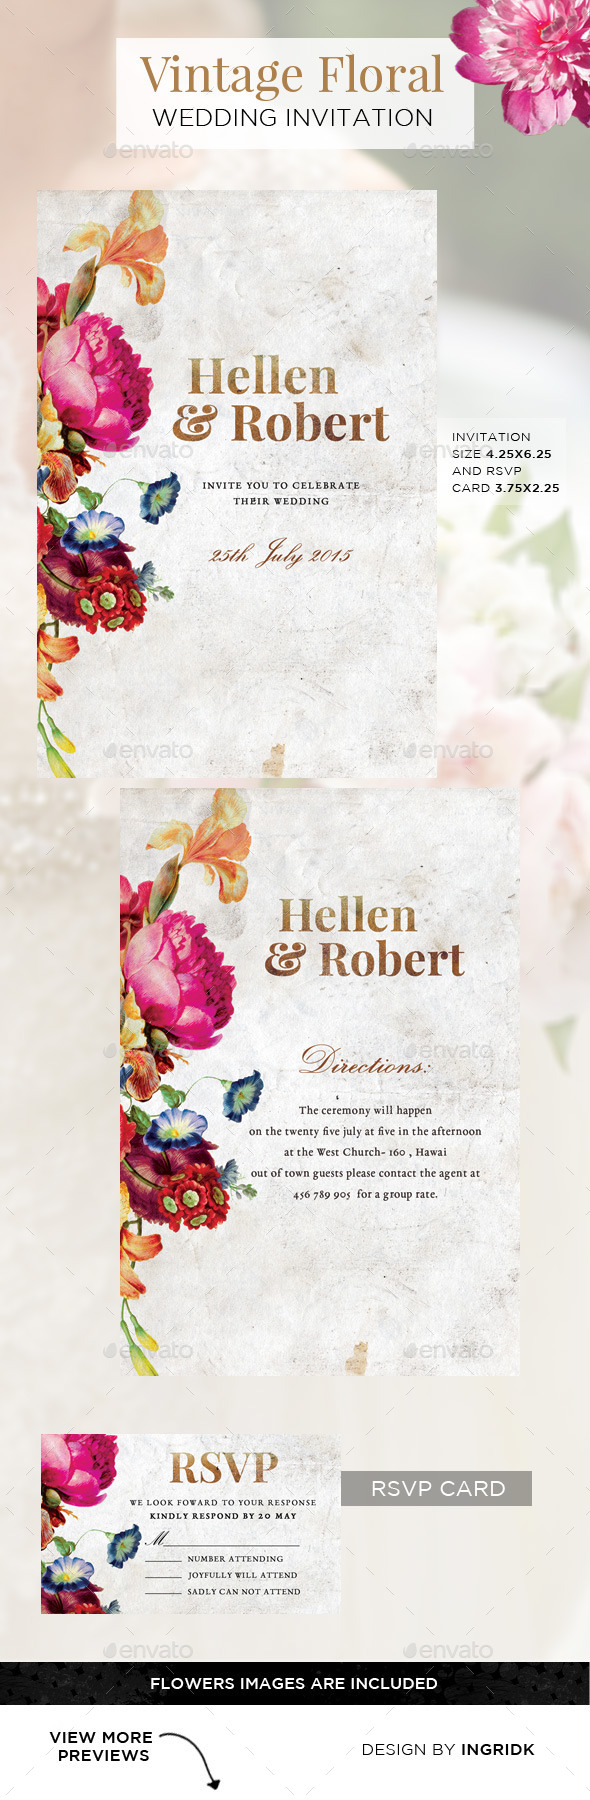 GraphicRiver Vintage Floral Wedding Invitation with RSVP Card 11469033